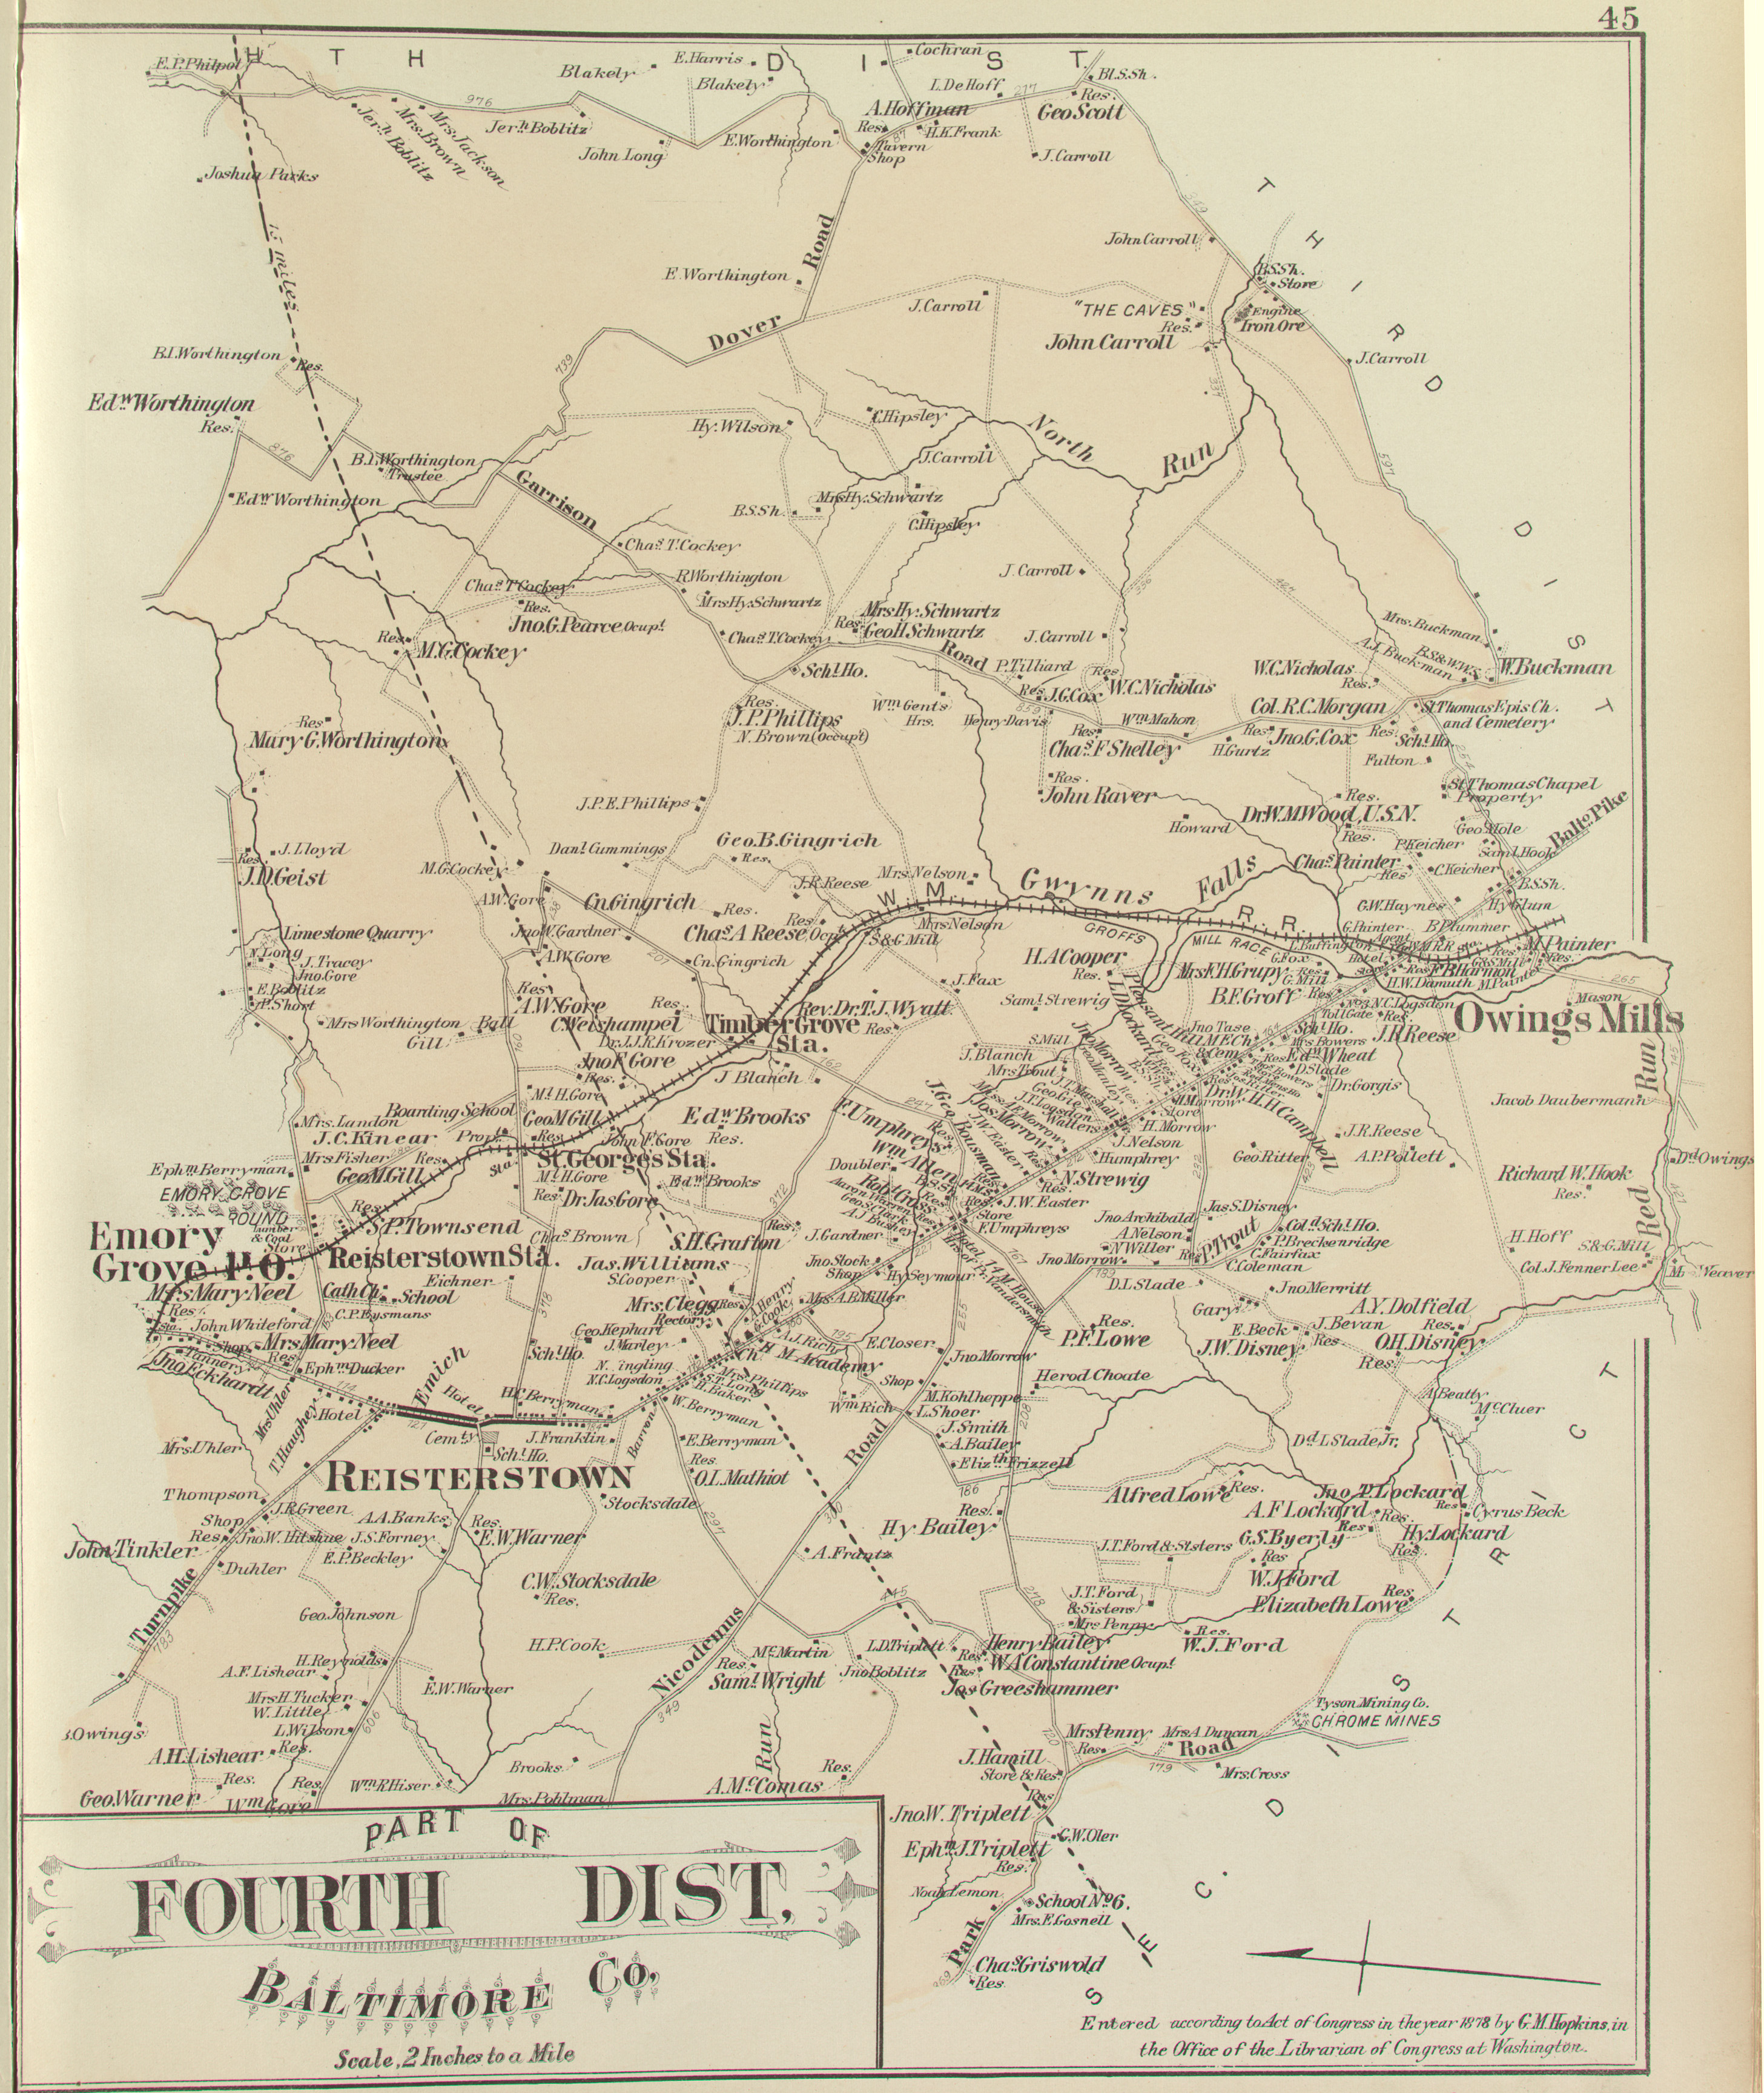 ANNE ARUNDEL CO.] Atlas of Fifteen Miles Around Baltimore ... on annapolis map, prince william county map, prince george's county map, frederick county map, howard county md map, arundel mills map, cass county map, harford county map, baltimore map, maryland county map, prince george co. md map, burke county map, calvert county map, glen burnie map, queen anne map, montgomery county map, carroll county map, arundel md map, ellicott city map, johnson county map,